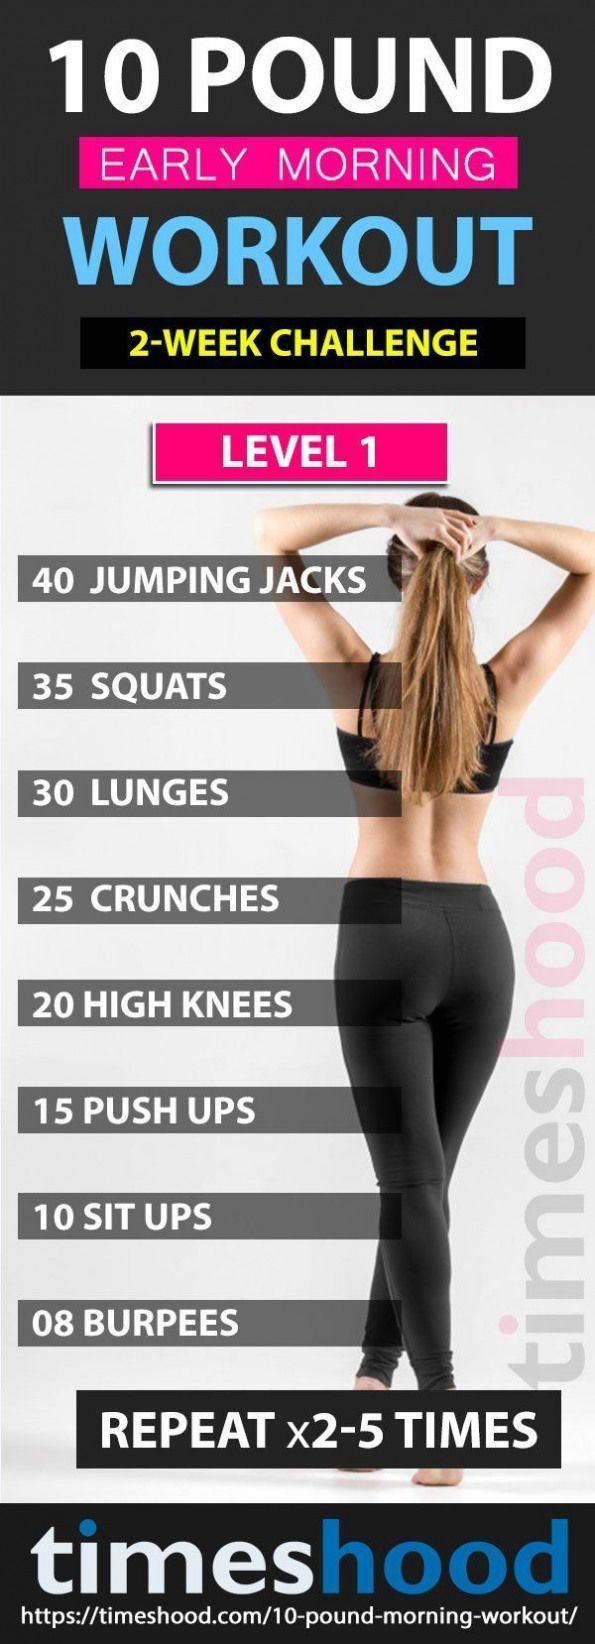 Lose 10 pounds in 3 weeks with this early morning workout plan. Best plan for beginner and advanced...